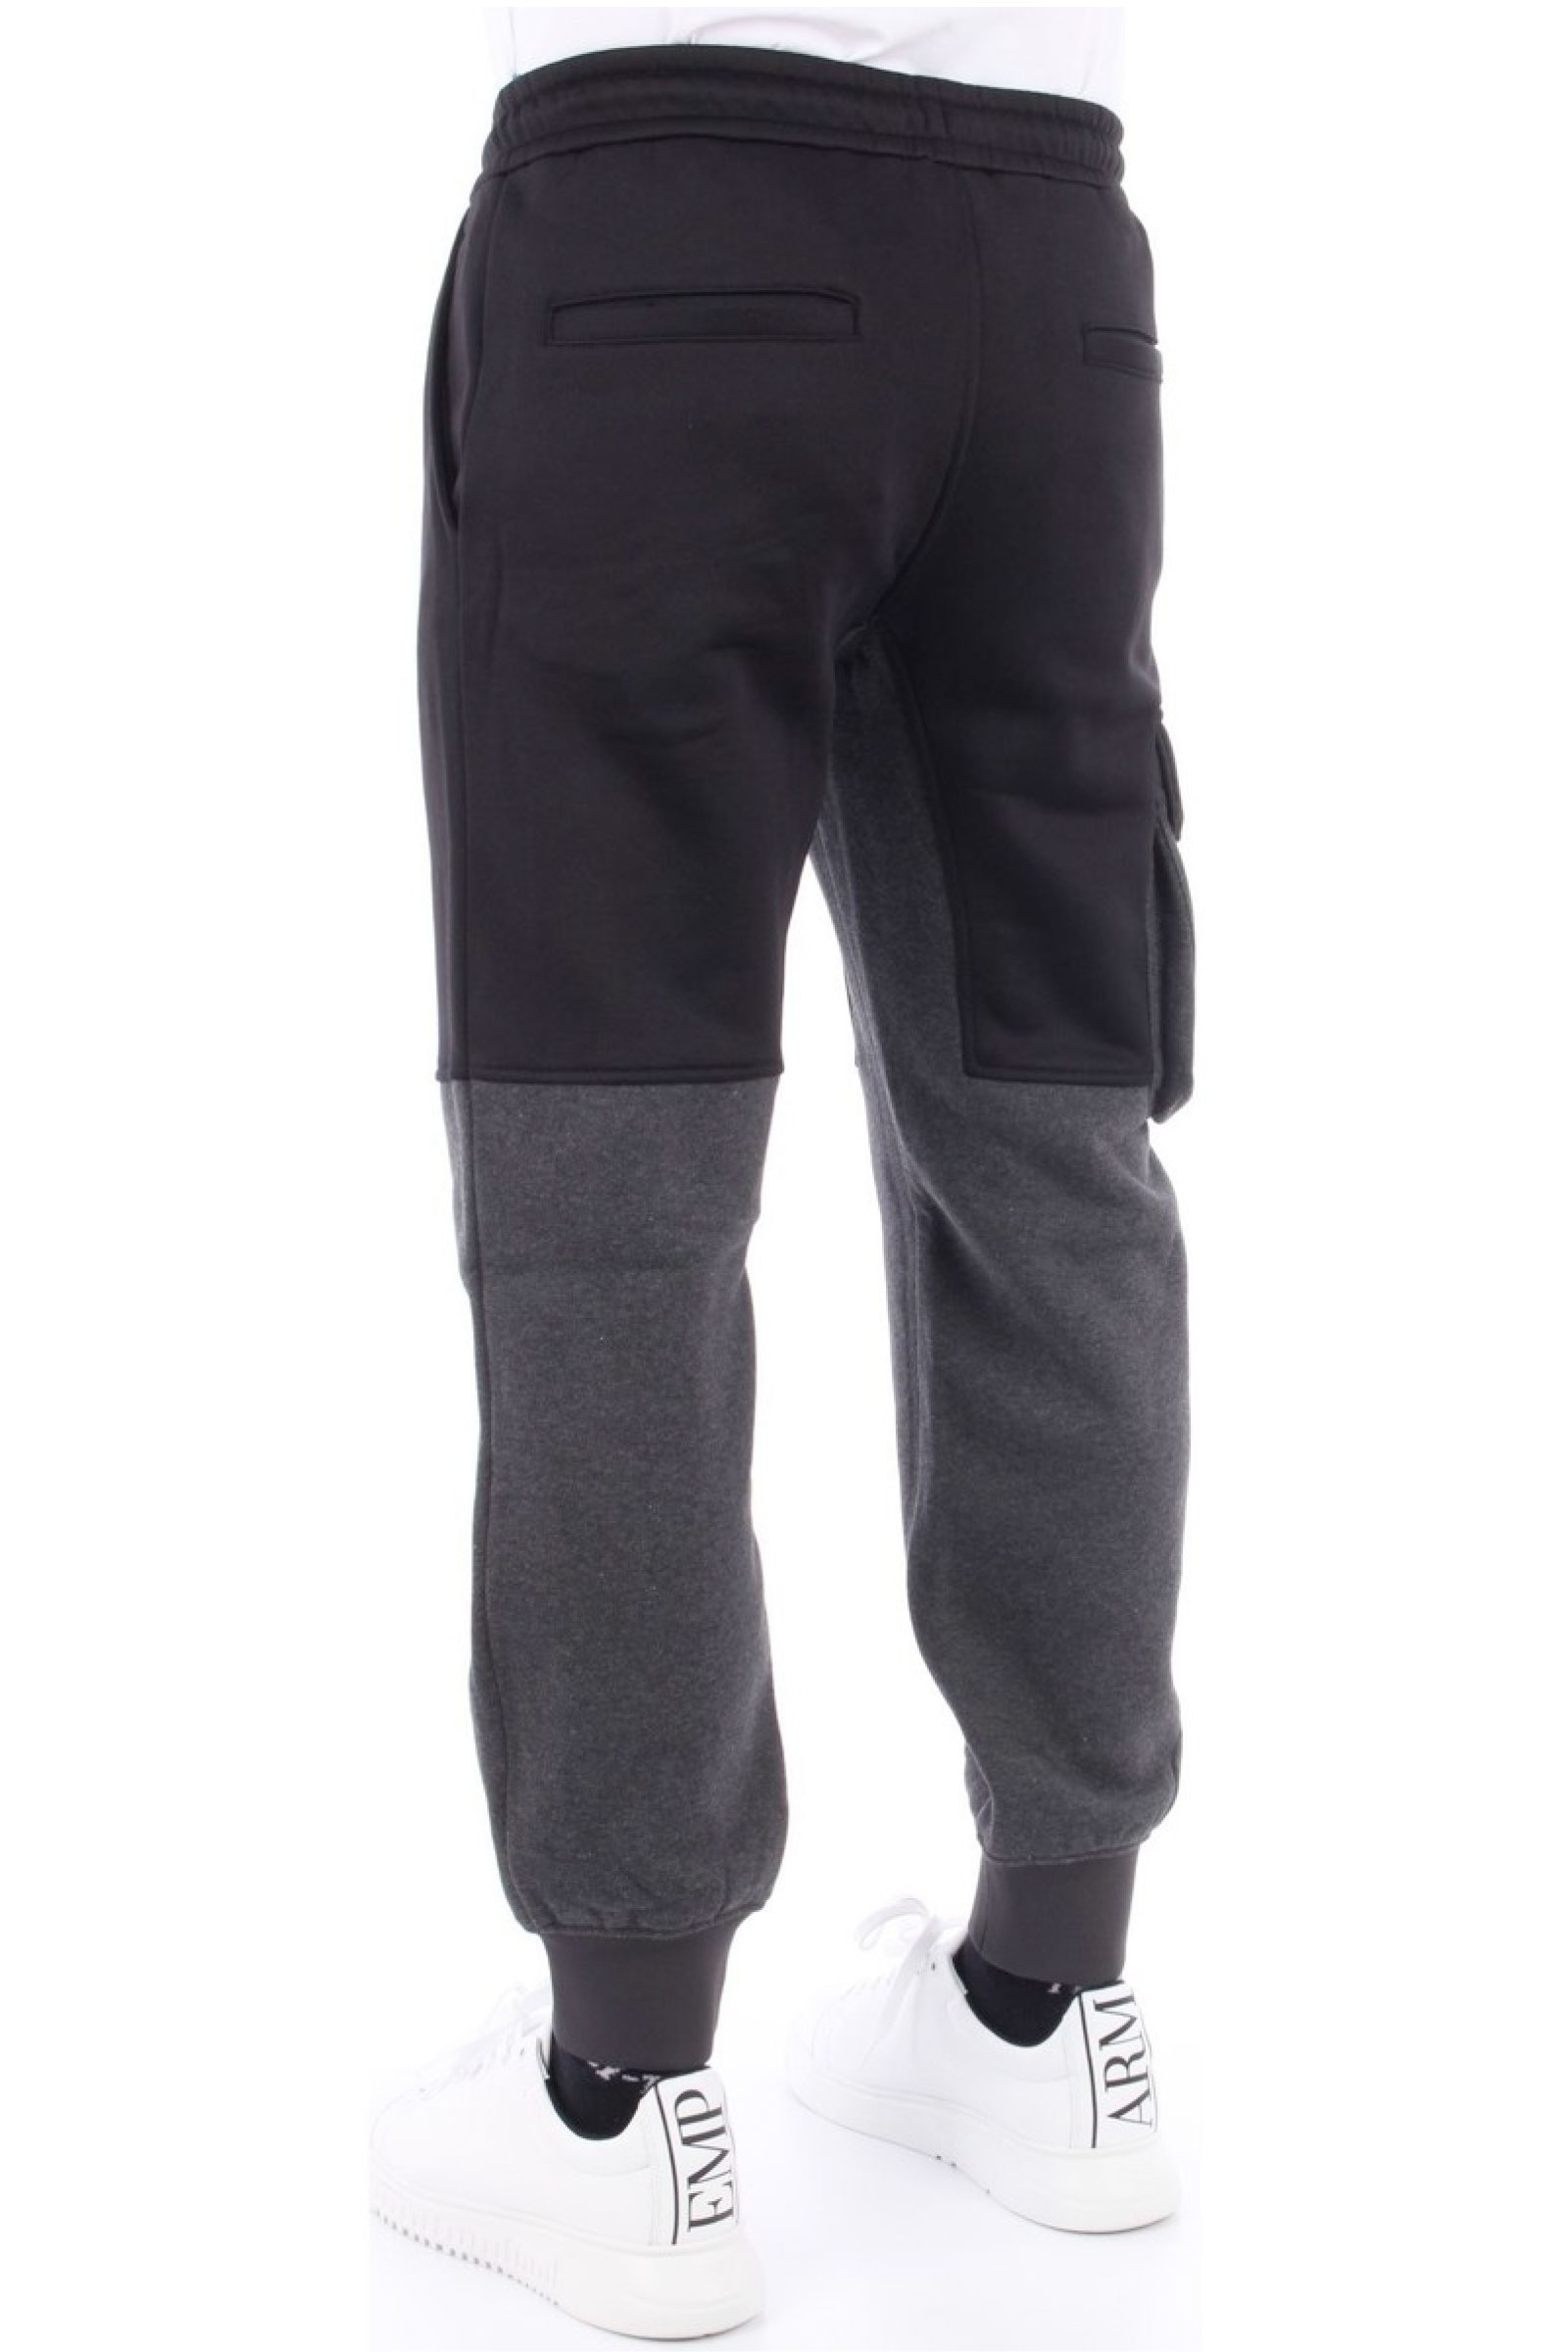 ARMANI EXCHANGE Men's trousers ARMANI EXCHANGE | Trousers | 6HZPLC ZJLBZ6277